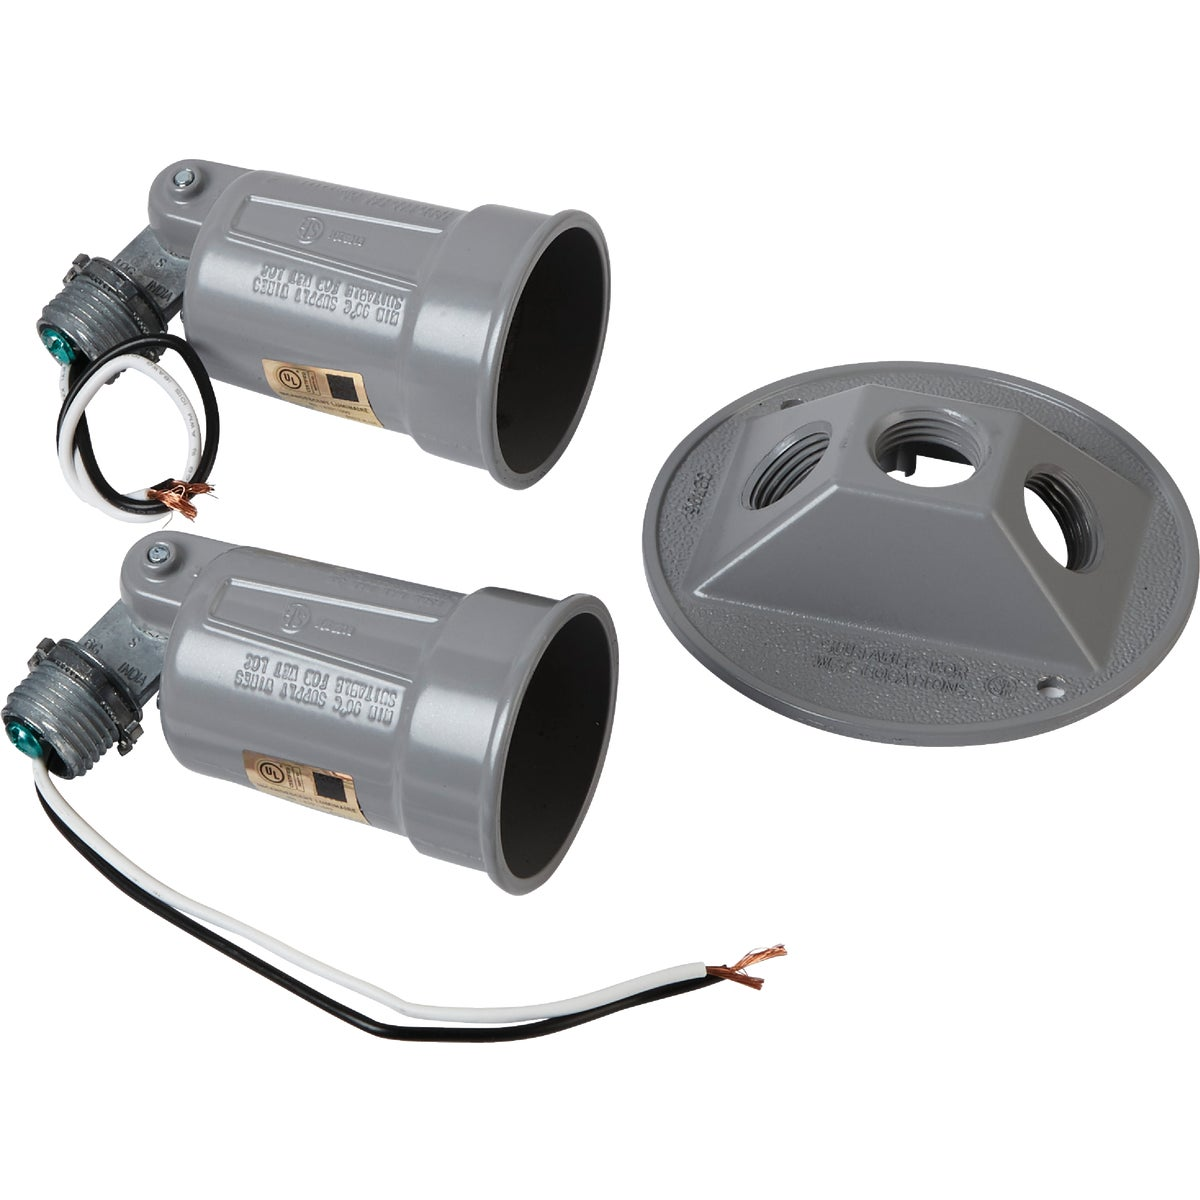 Bell 150W Aluminum 2-Bulb Weatherproof Outdoor Lampholder With Round Cover